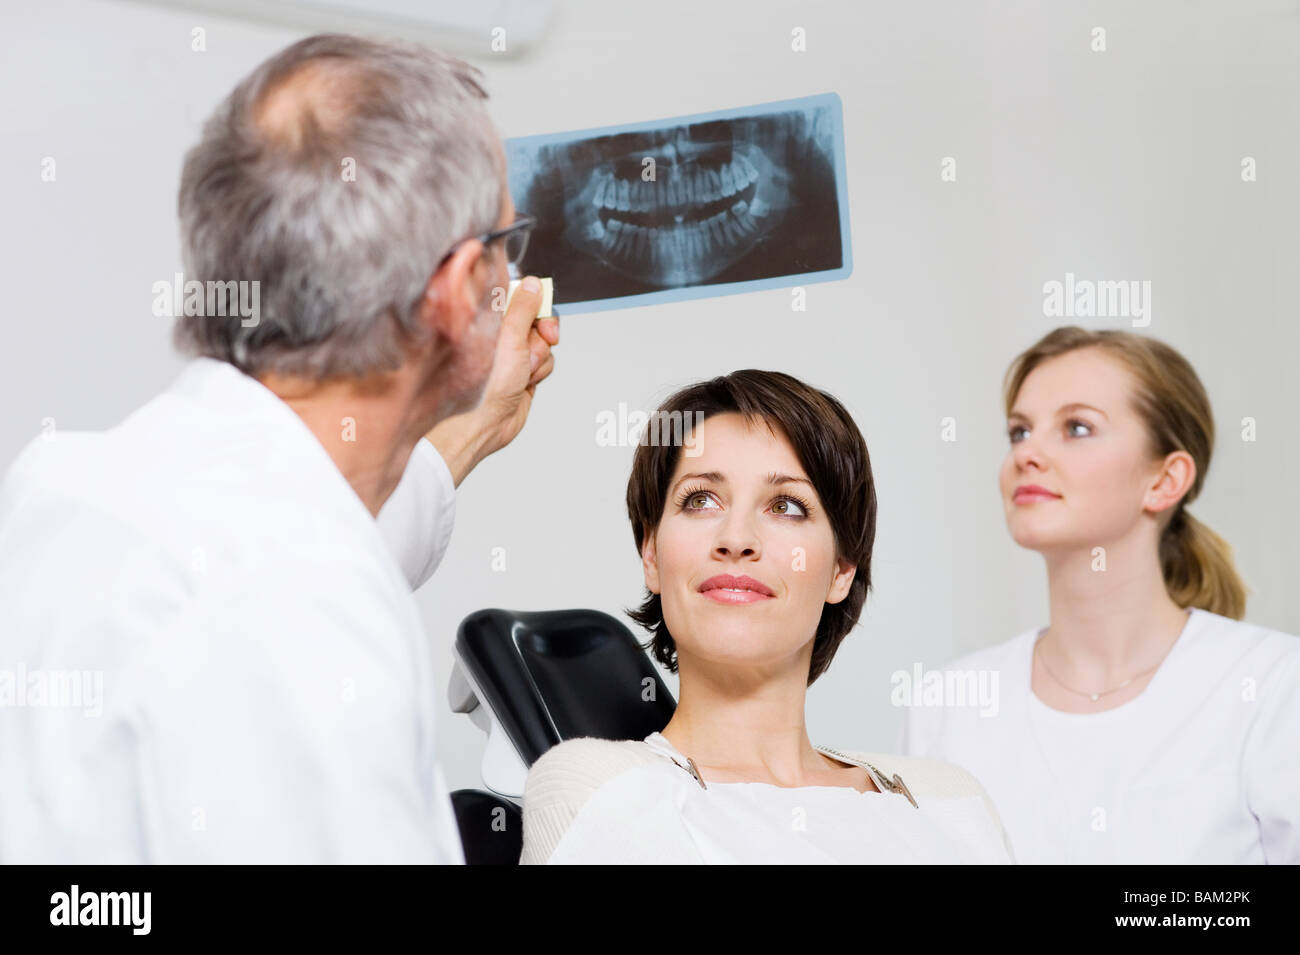 Dentist with patients x-ray - Stock Image